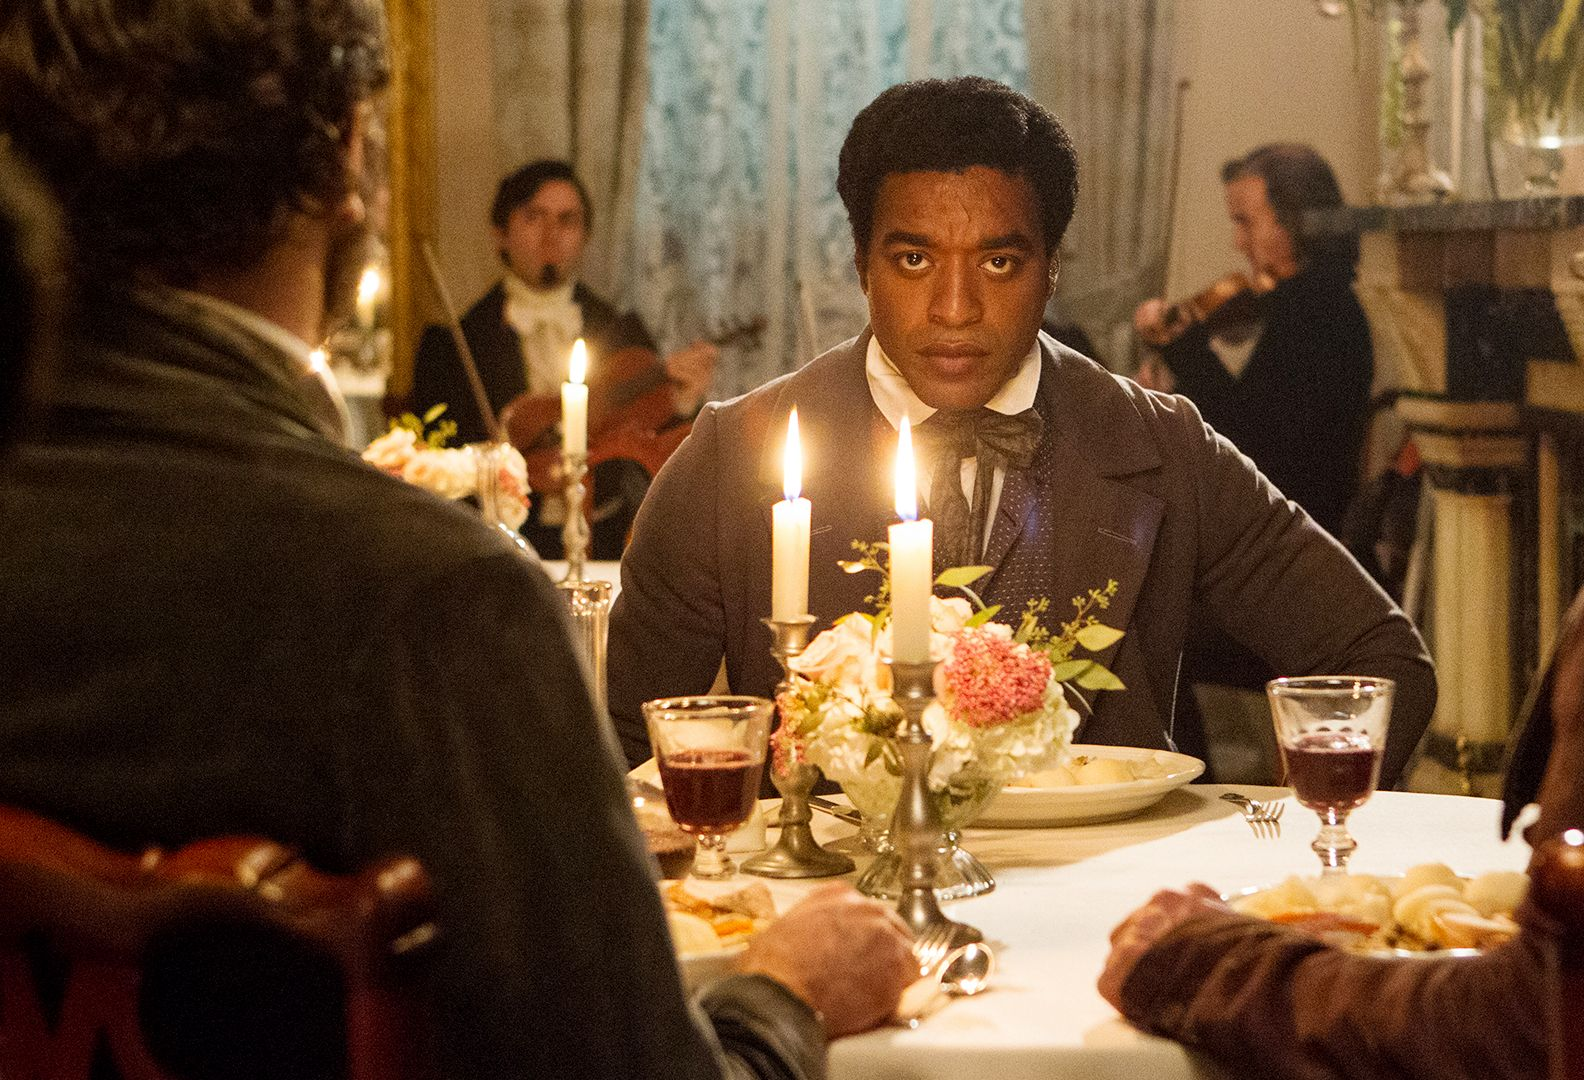 Dinner in 12 Years A Slave